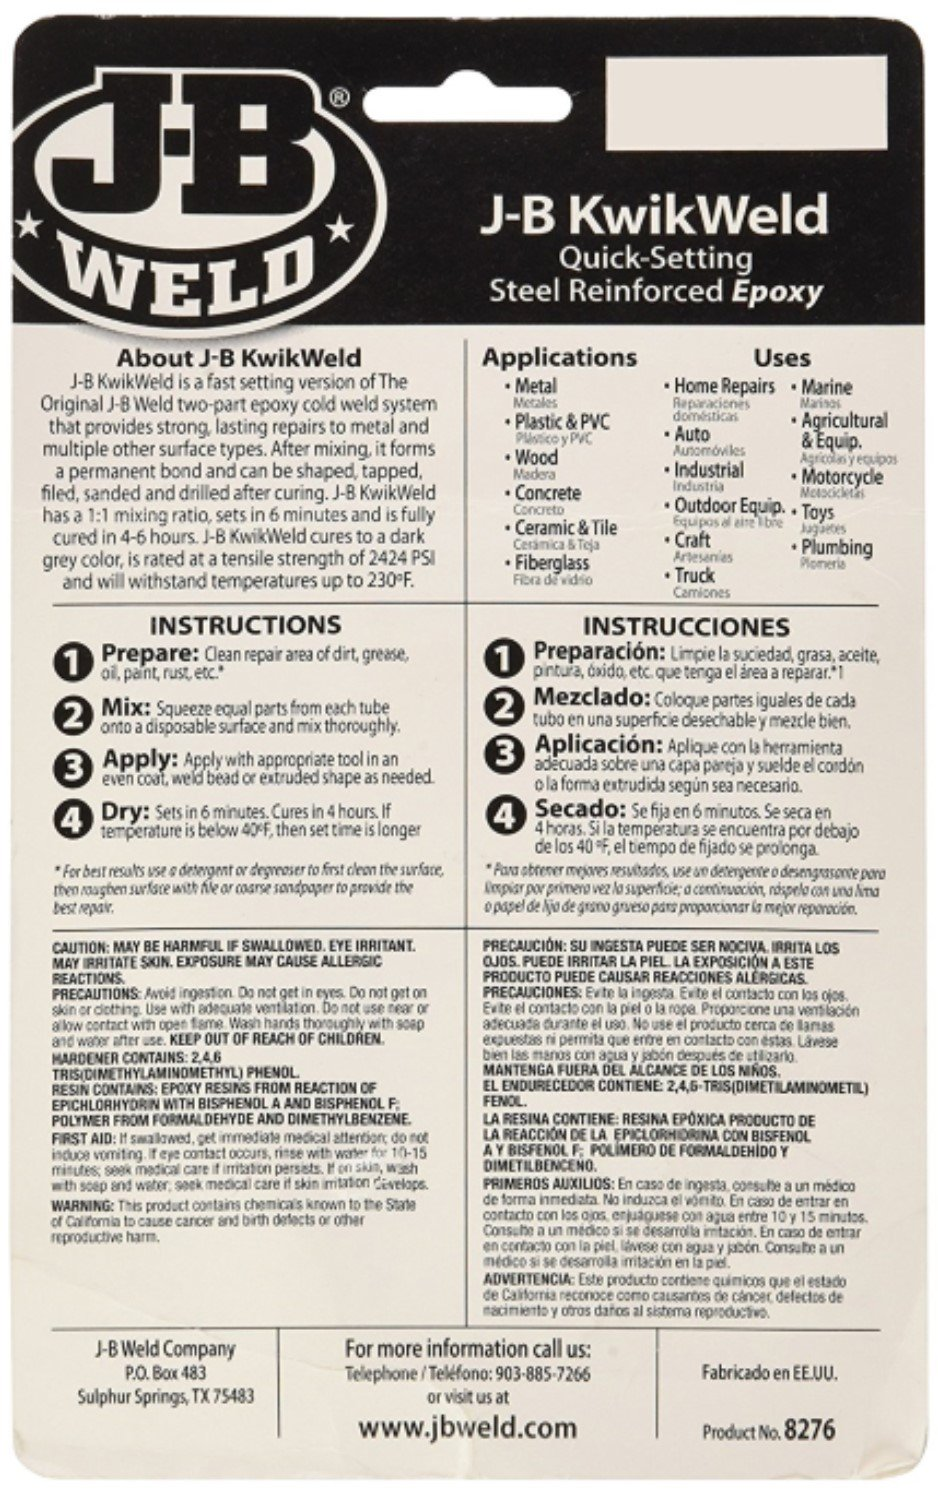 J-B Weld 8276 KwikWeld Quick Setting Steel Reinforced Epoxy - 2 oz, Pack of 4